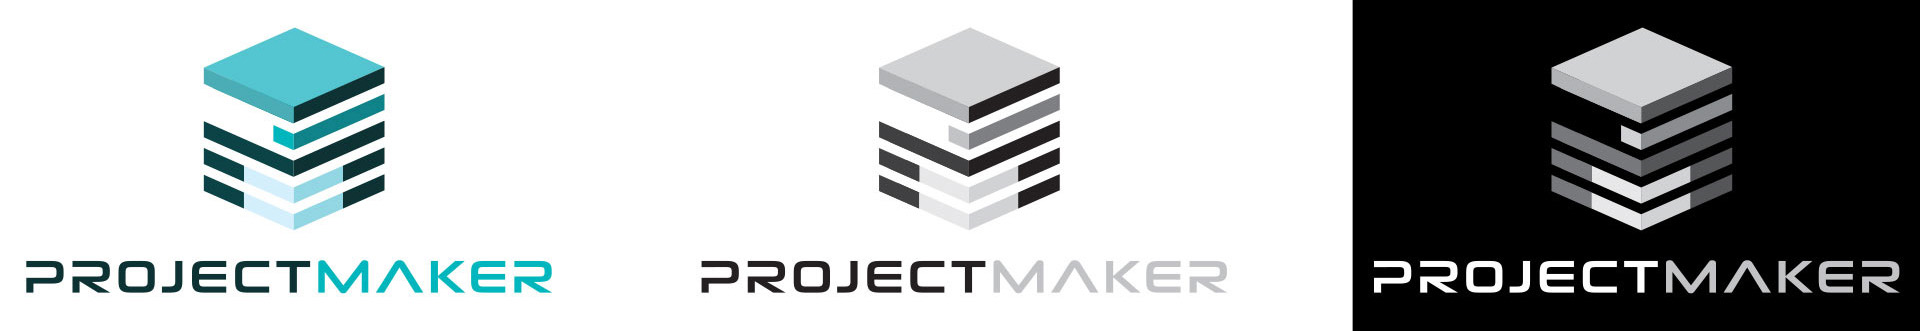 logoproject3